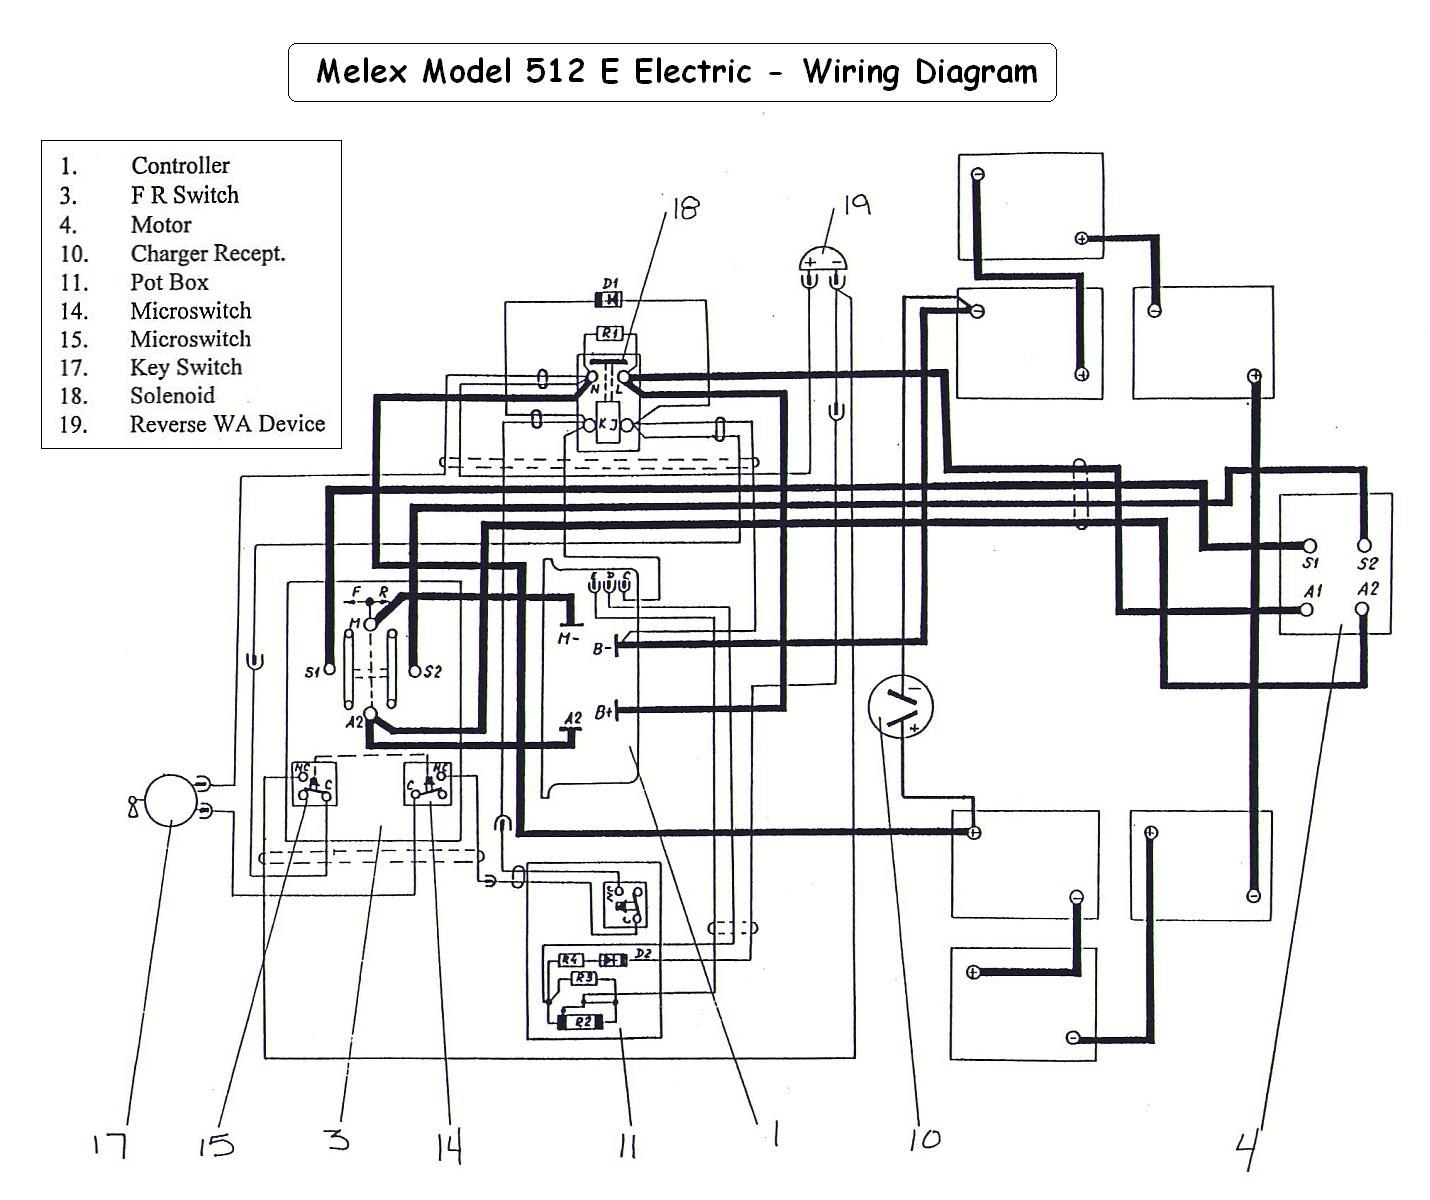 Yamaha Wiring Diagrams – readingrat.net on club car solenoid wiring diagram, club car carryall wiring diagram, gas club car wiring diagram, club car 36v batteries diagram, club car electric diagram, club car charger wiring diagram, club car battery diagram, 48 volt club car wiring diagram, club car light wiring diagram, golf club parts diagram, club car ds wiring diagram, club car precedent wiring diagram, club car schematic diagram, car battery wiring diagram, club car carburetor diagram, 36 volt club car wiring diagram, club car parts diagram, club cart parts diagram, club car headlight wiring diagram, club car electrical diagram,